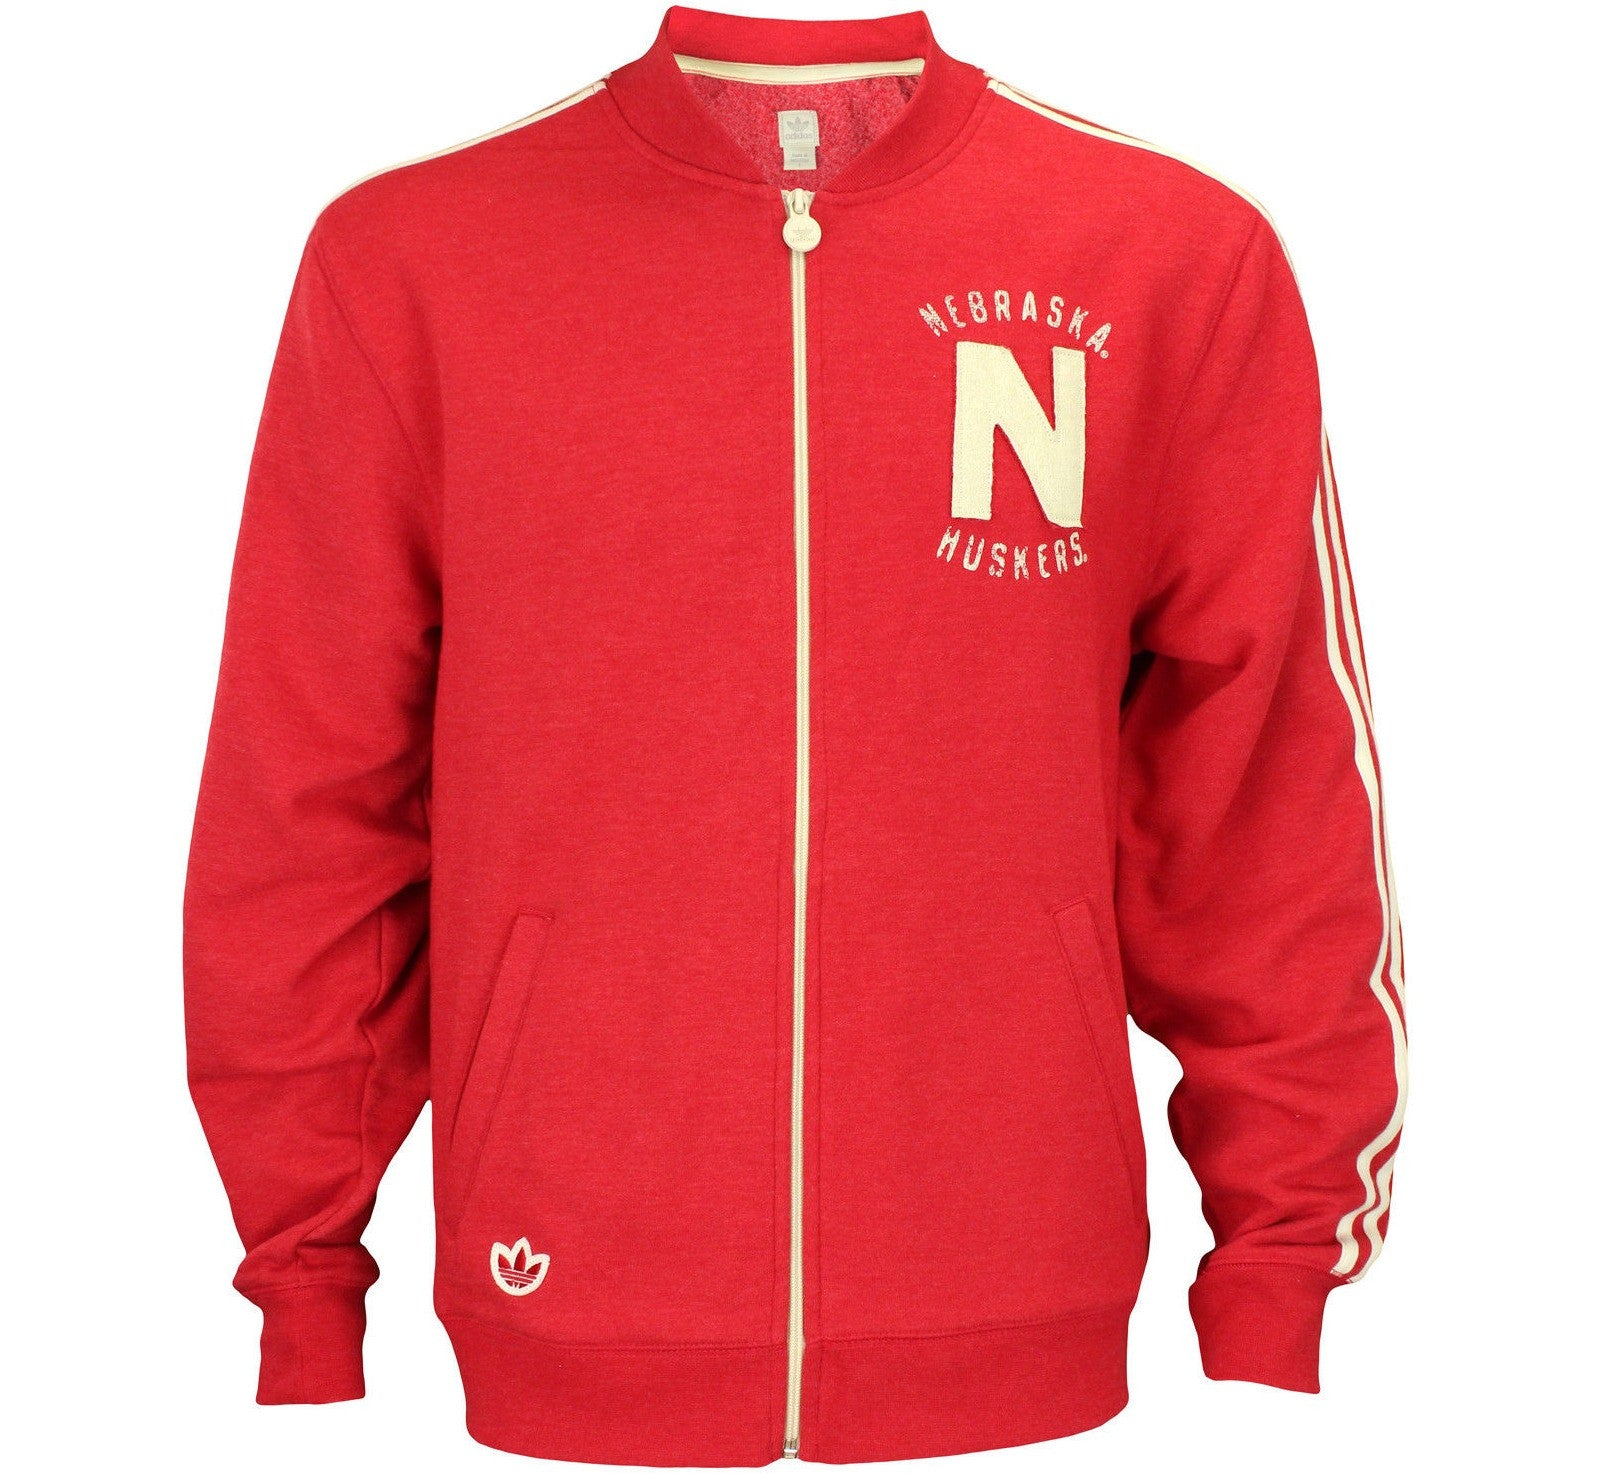 Cornhuskers Retro Track Jacket - And Still